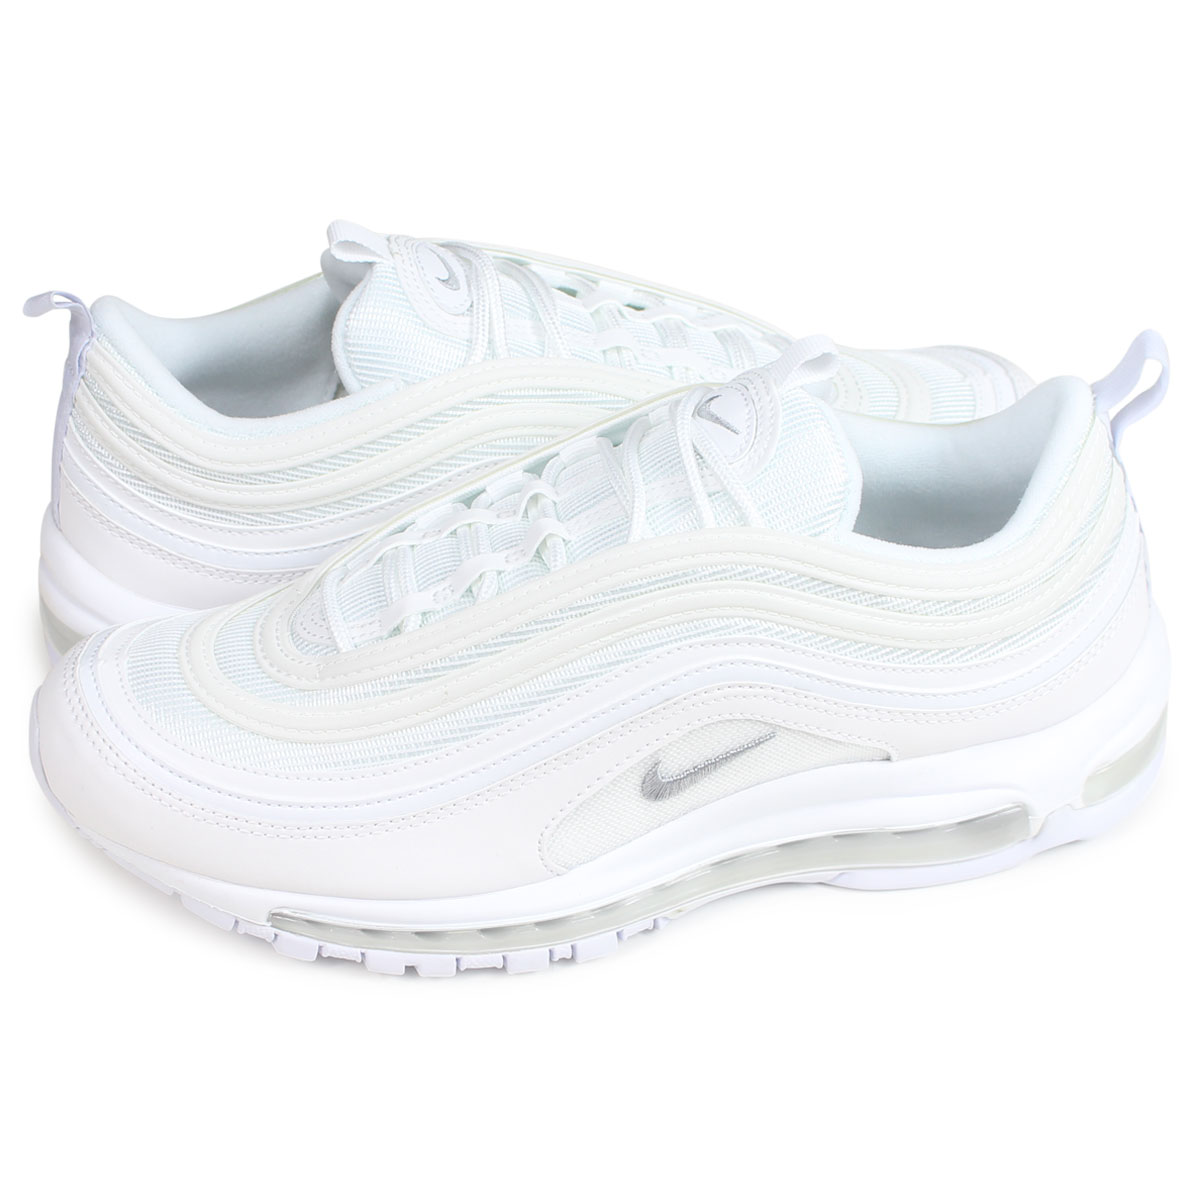 e528e8b3e1e785 ALLSPORTS  Nike NIKE Air Max 97 sneakers men AIR MAX 97 OG white ...